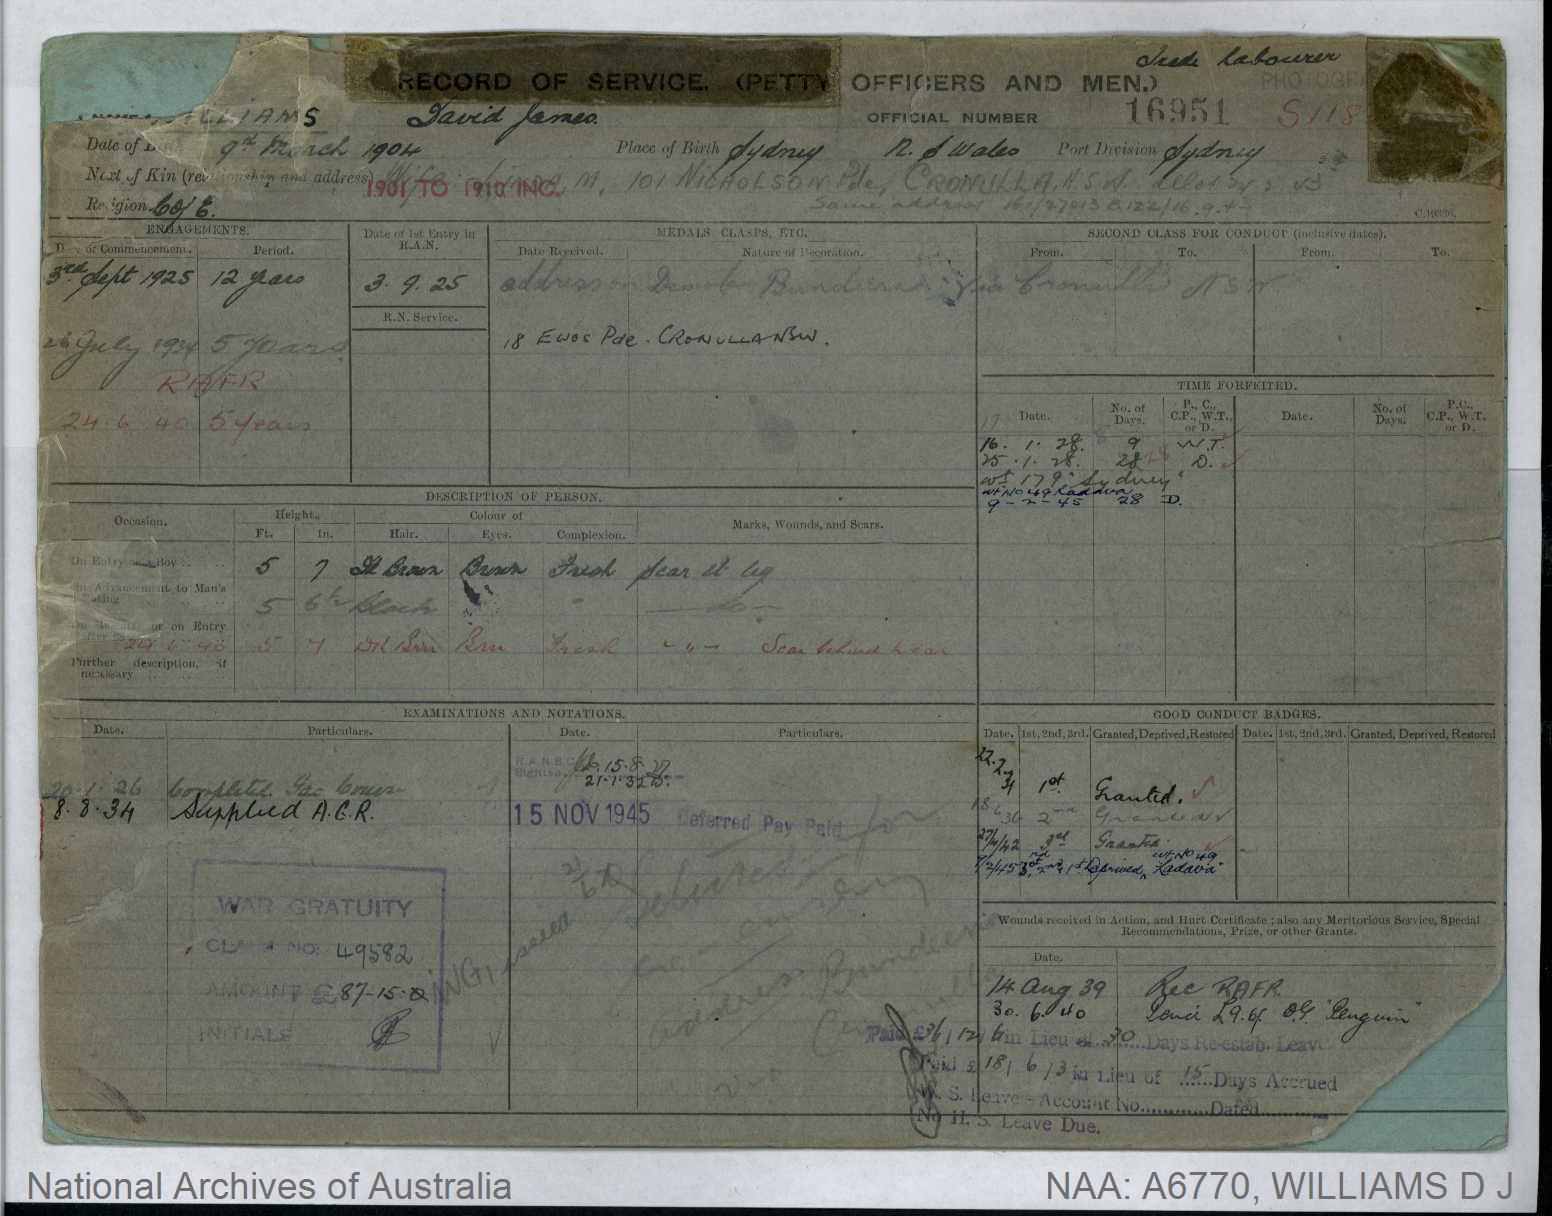 WILLIAMS DAVID JAMES : Service Number - 16951 : Date of birth - 09 Mar 1904 : Place of birth - SYDNEY NSW : Place of enlistment - SYDNEY : Next of Kin - LINDA